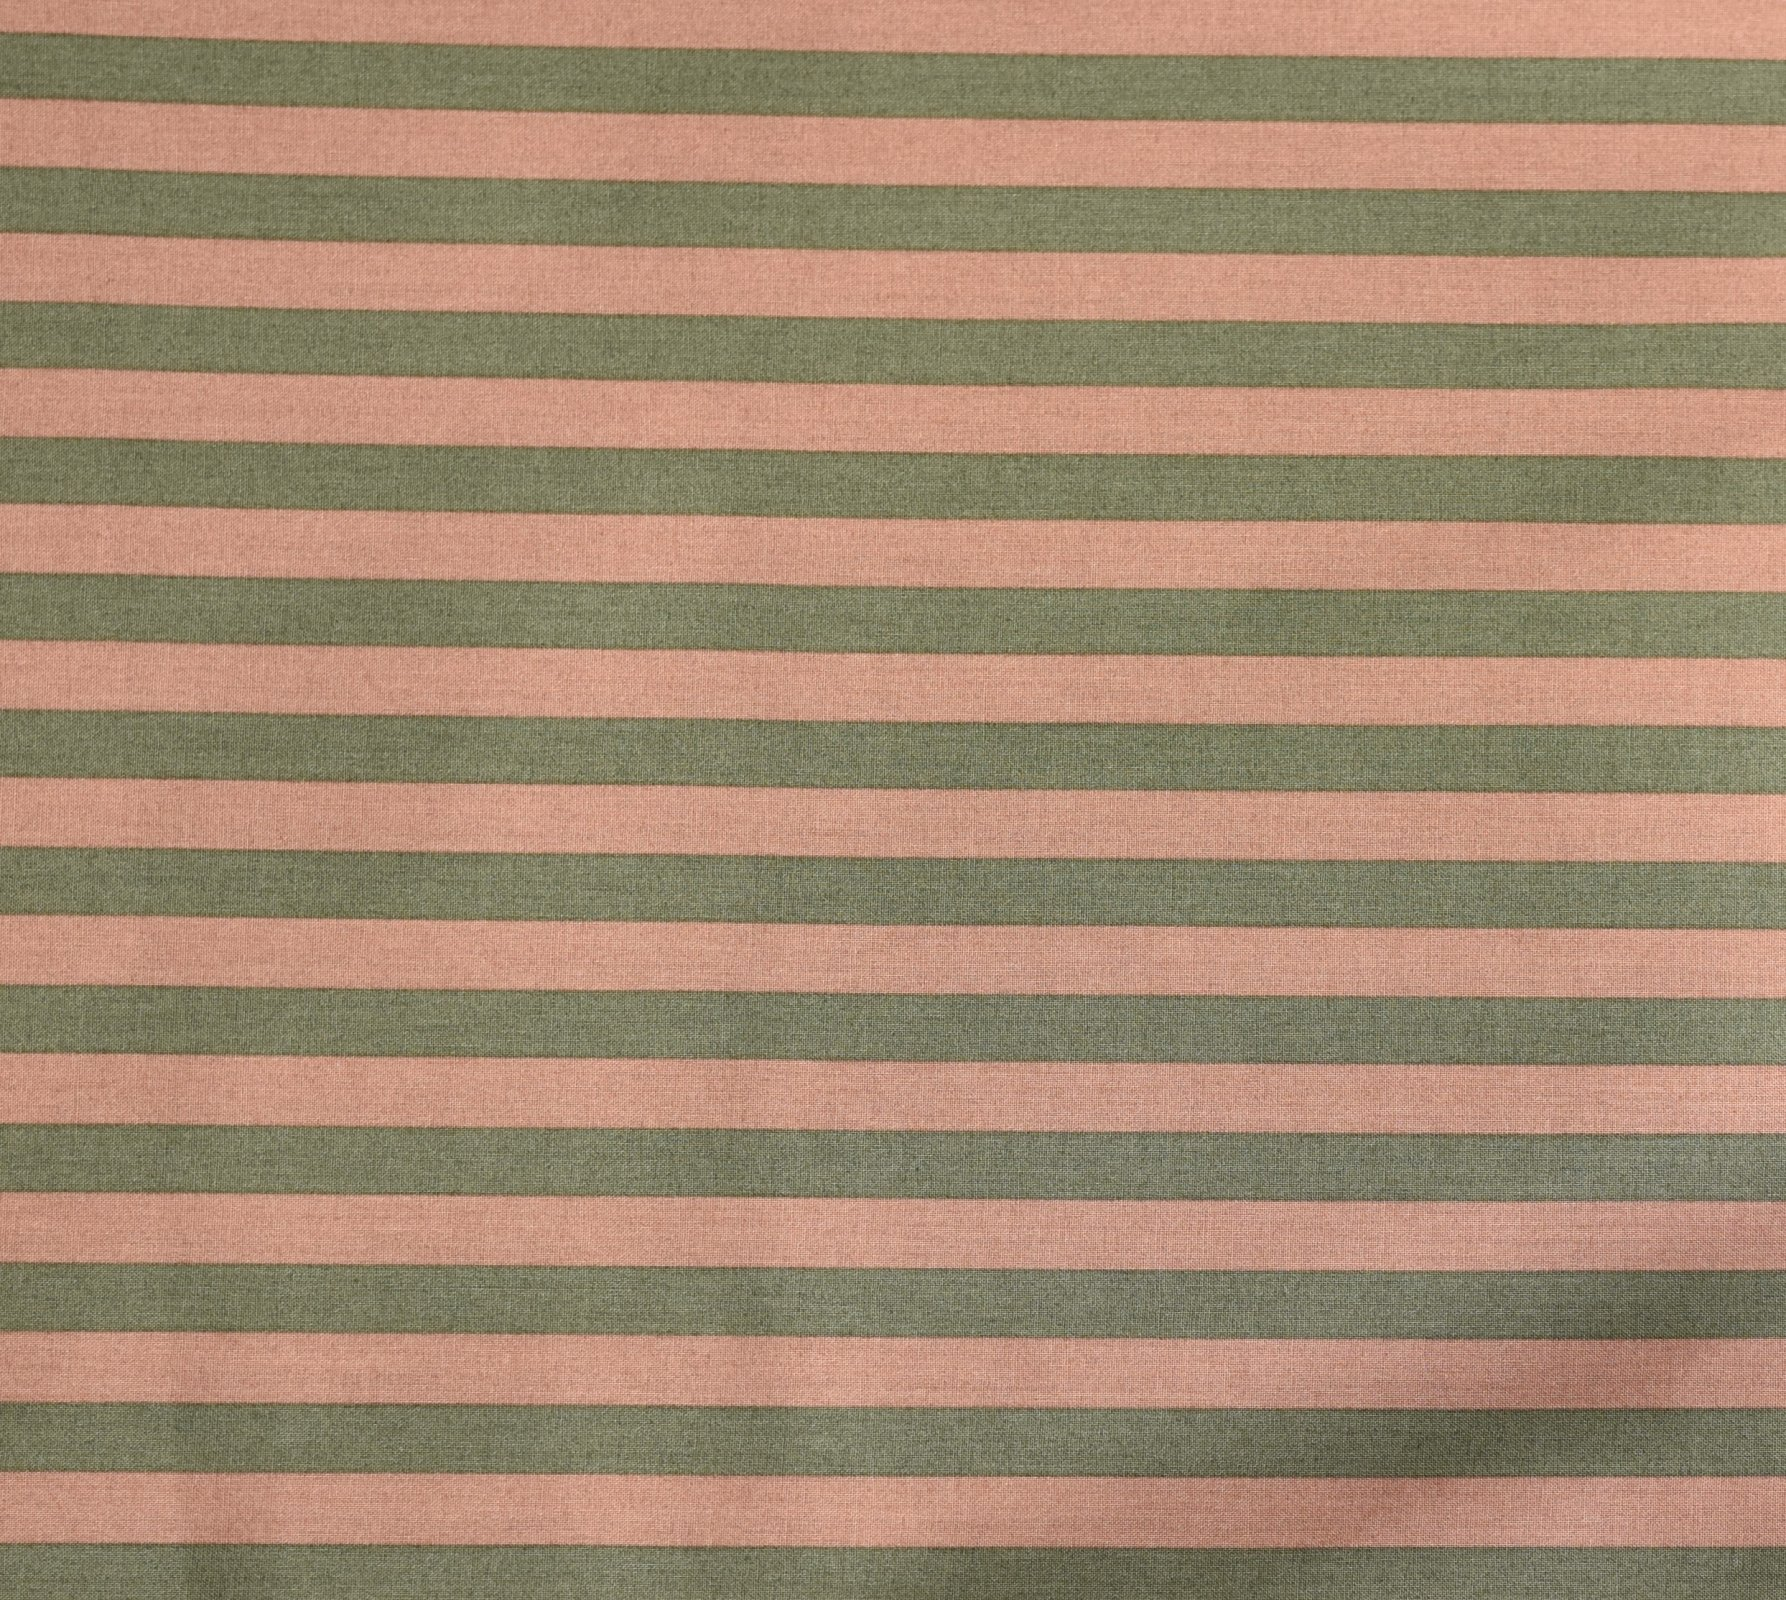 Japanese Fabric - Color Cocktails - Thick Stripe - Dusty Rose/Grey